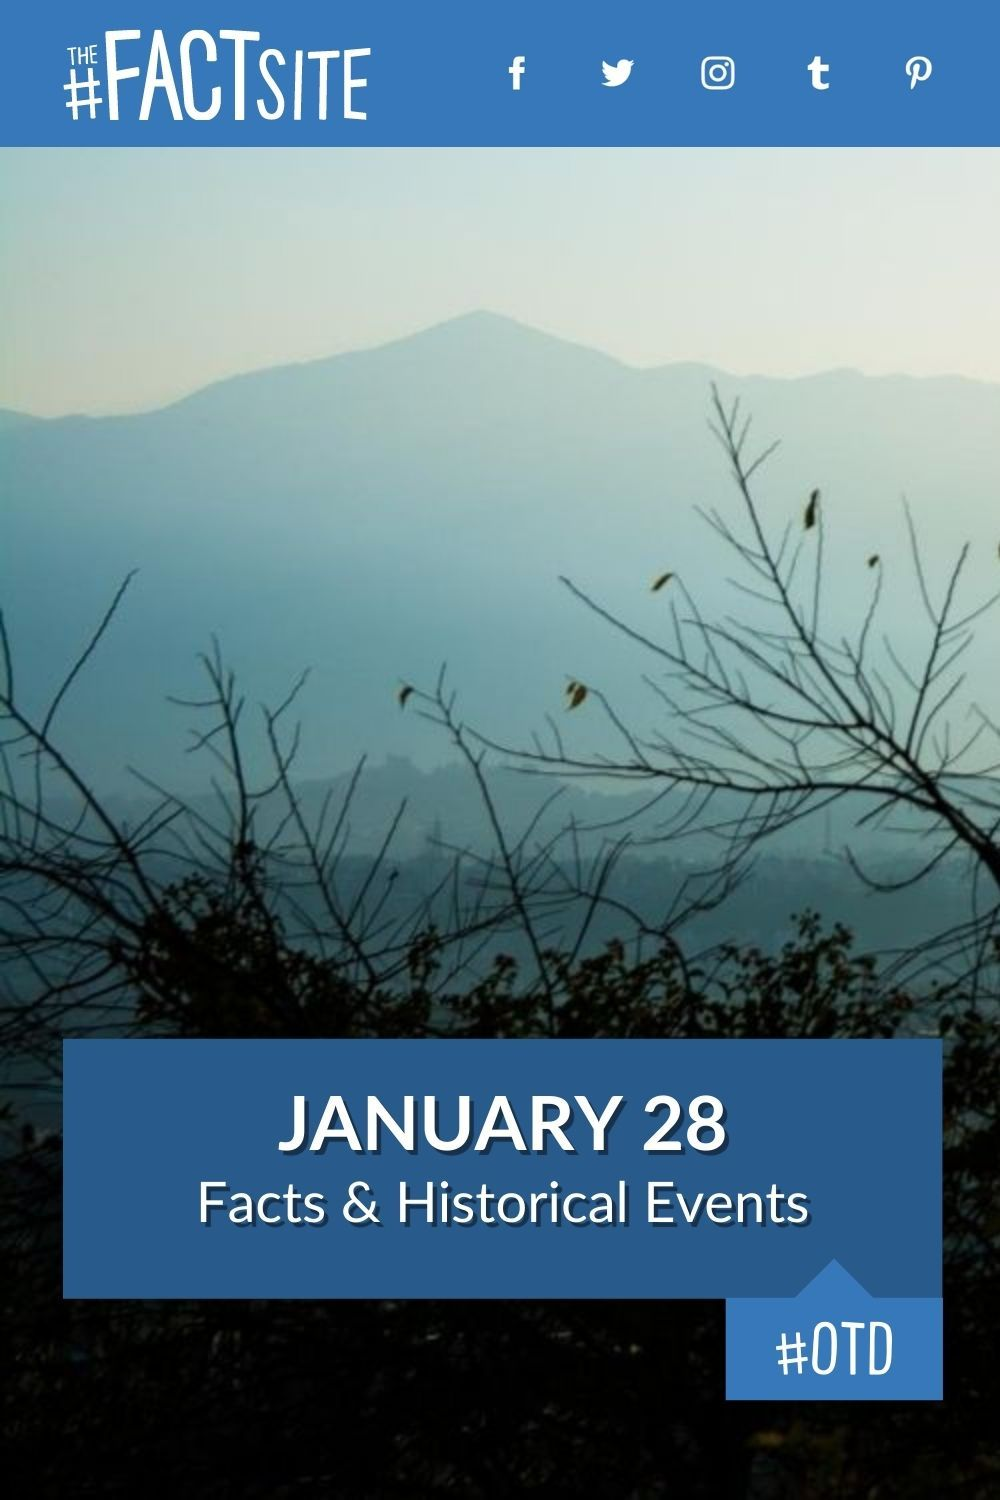 Facts & Historic Events That Happened on January 28